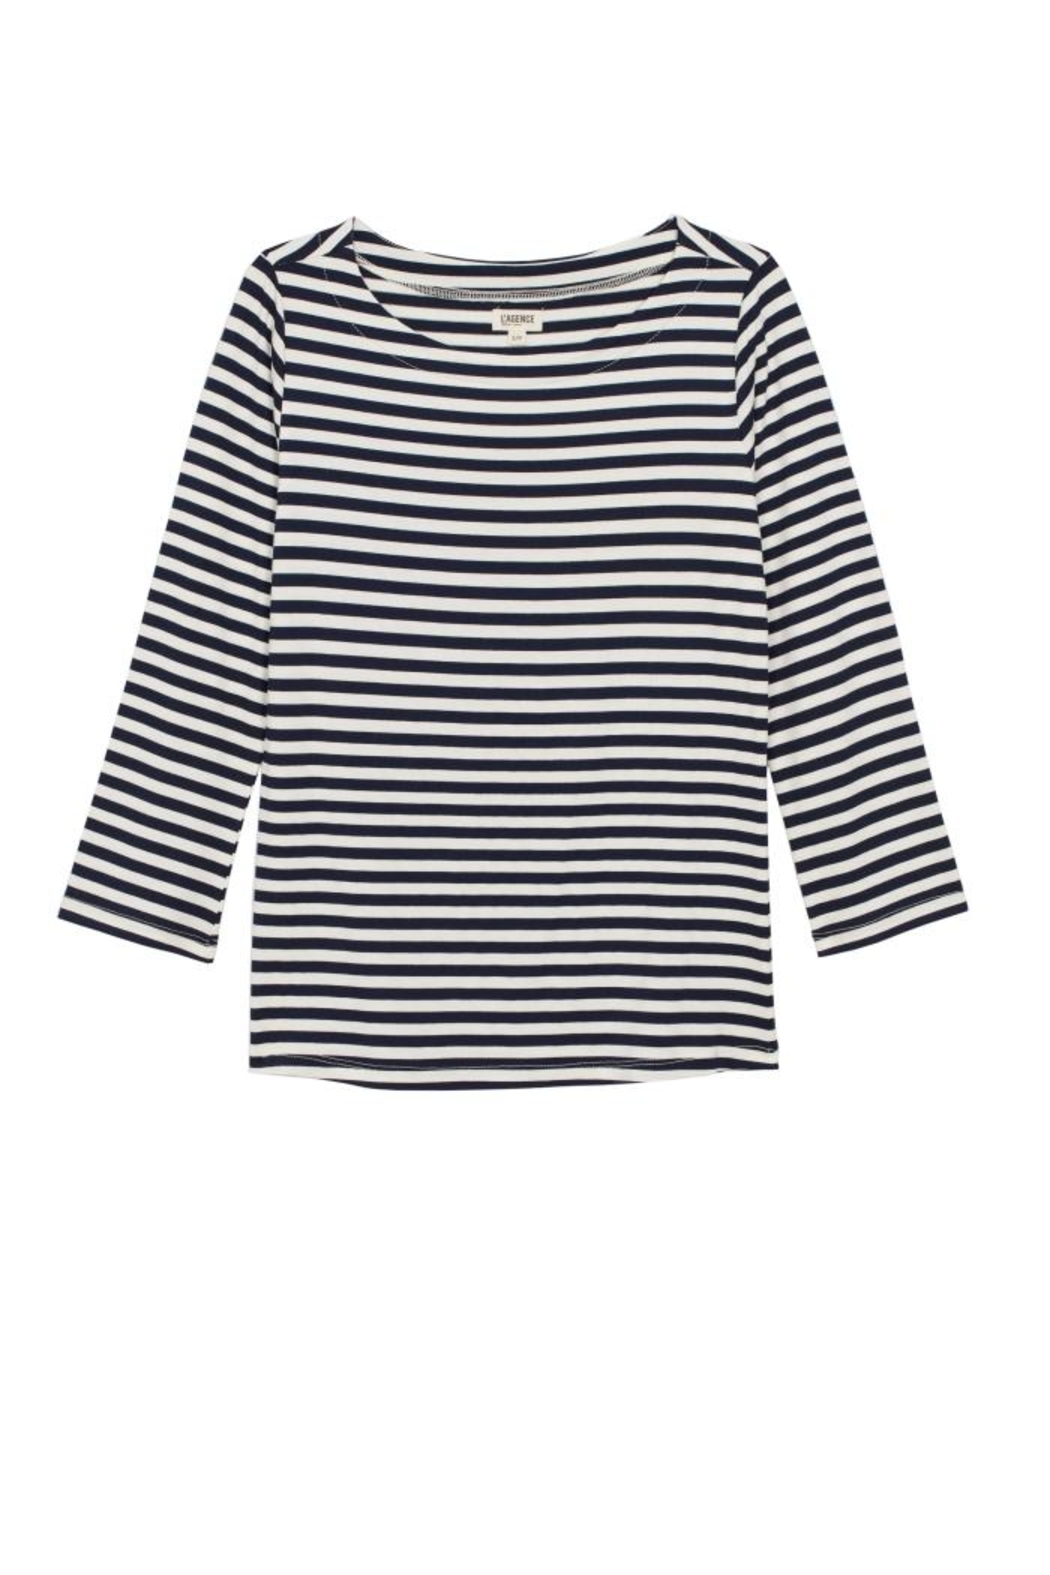 L'Agence Lucy Stripe Shirt - Back Cropped Image